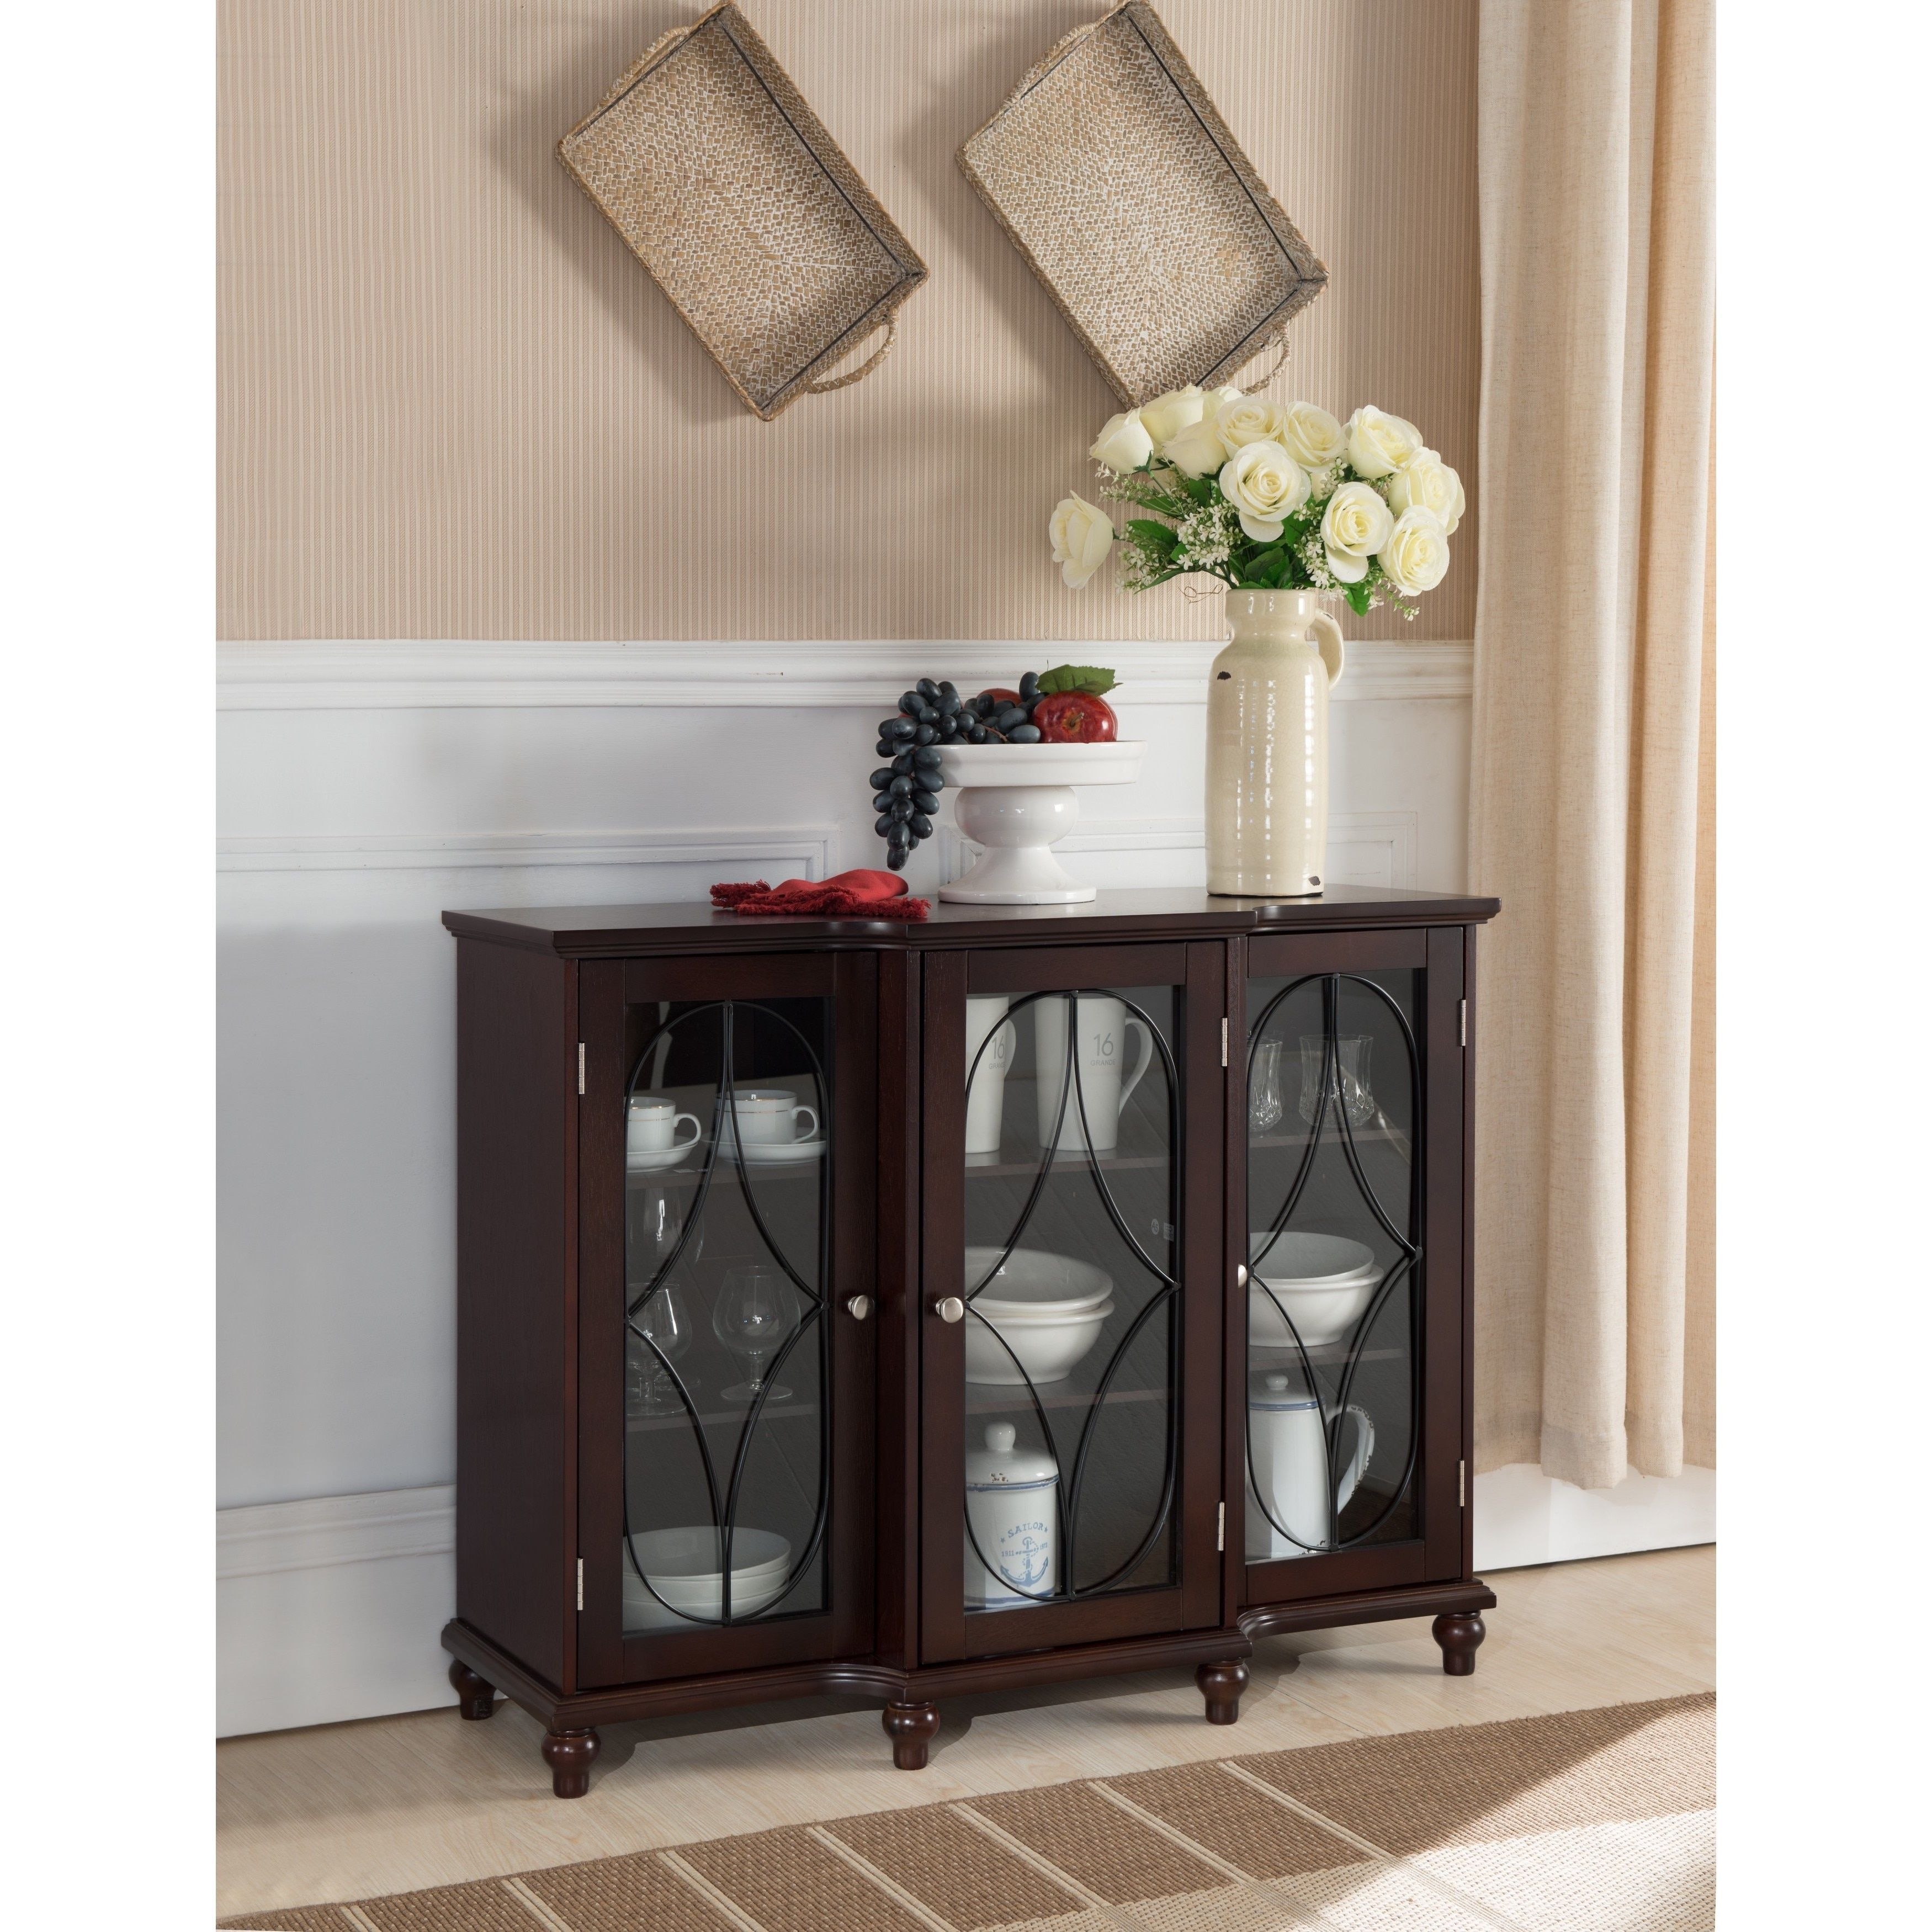 Pin On Home Ideas Console table with glass doors